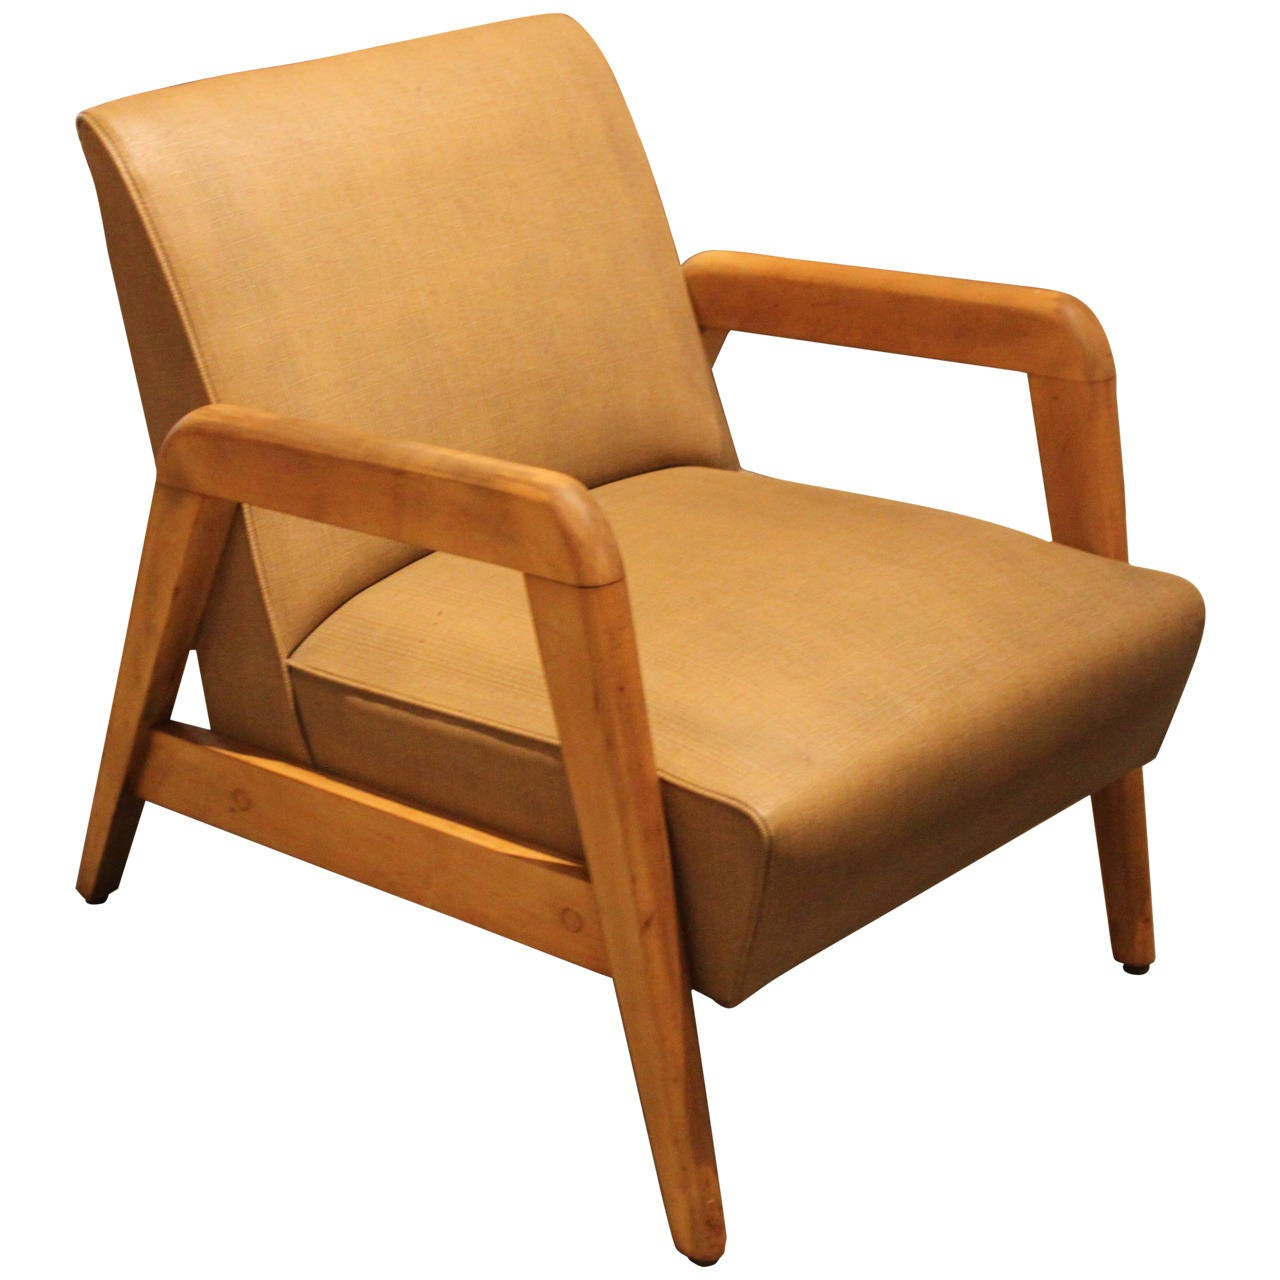 Mid century modern lounge chair at 1stdibs for Contemporary lounge furniture